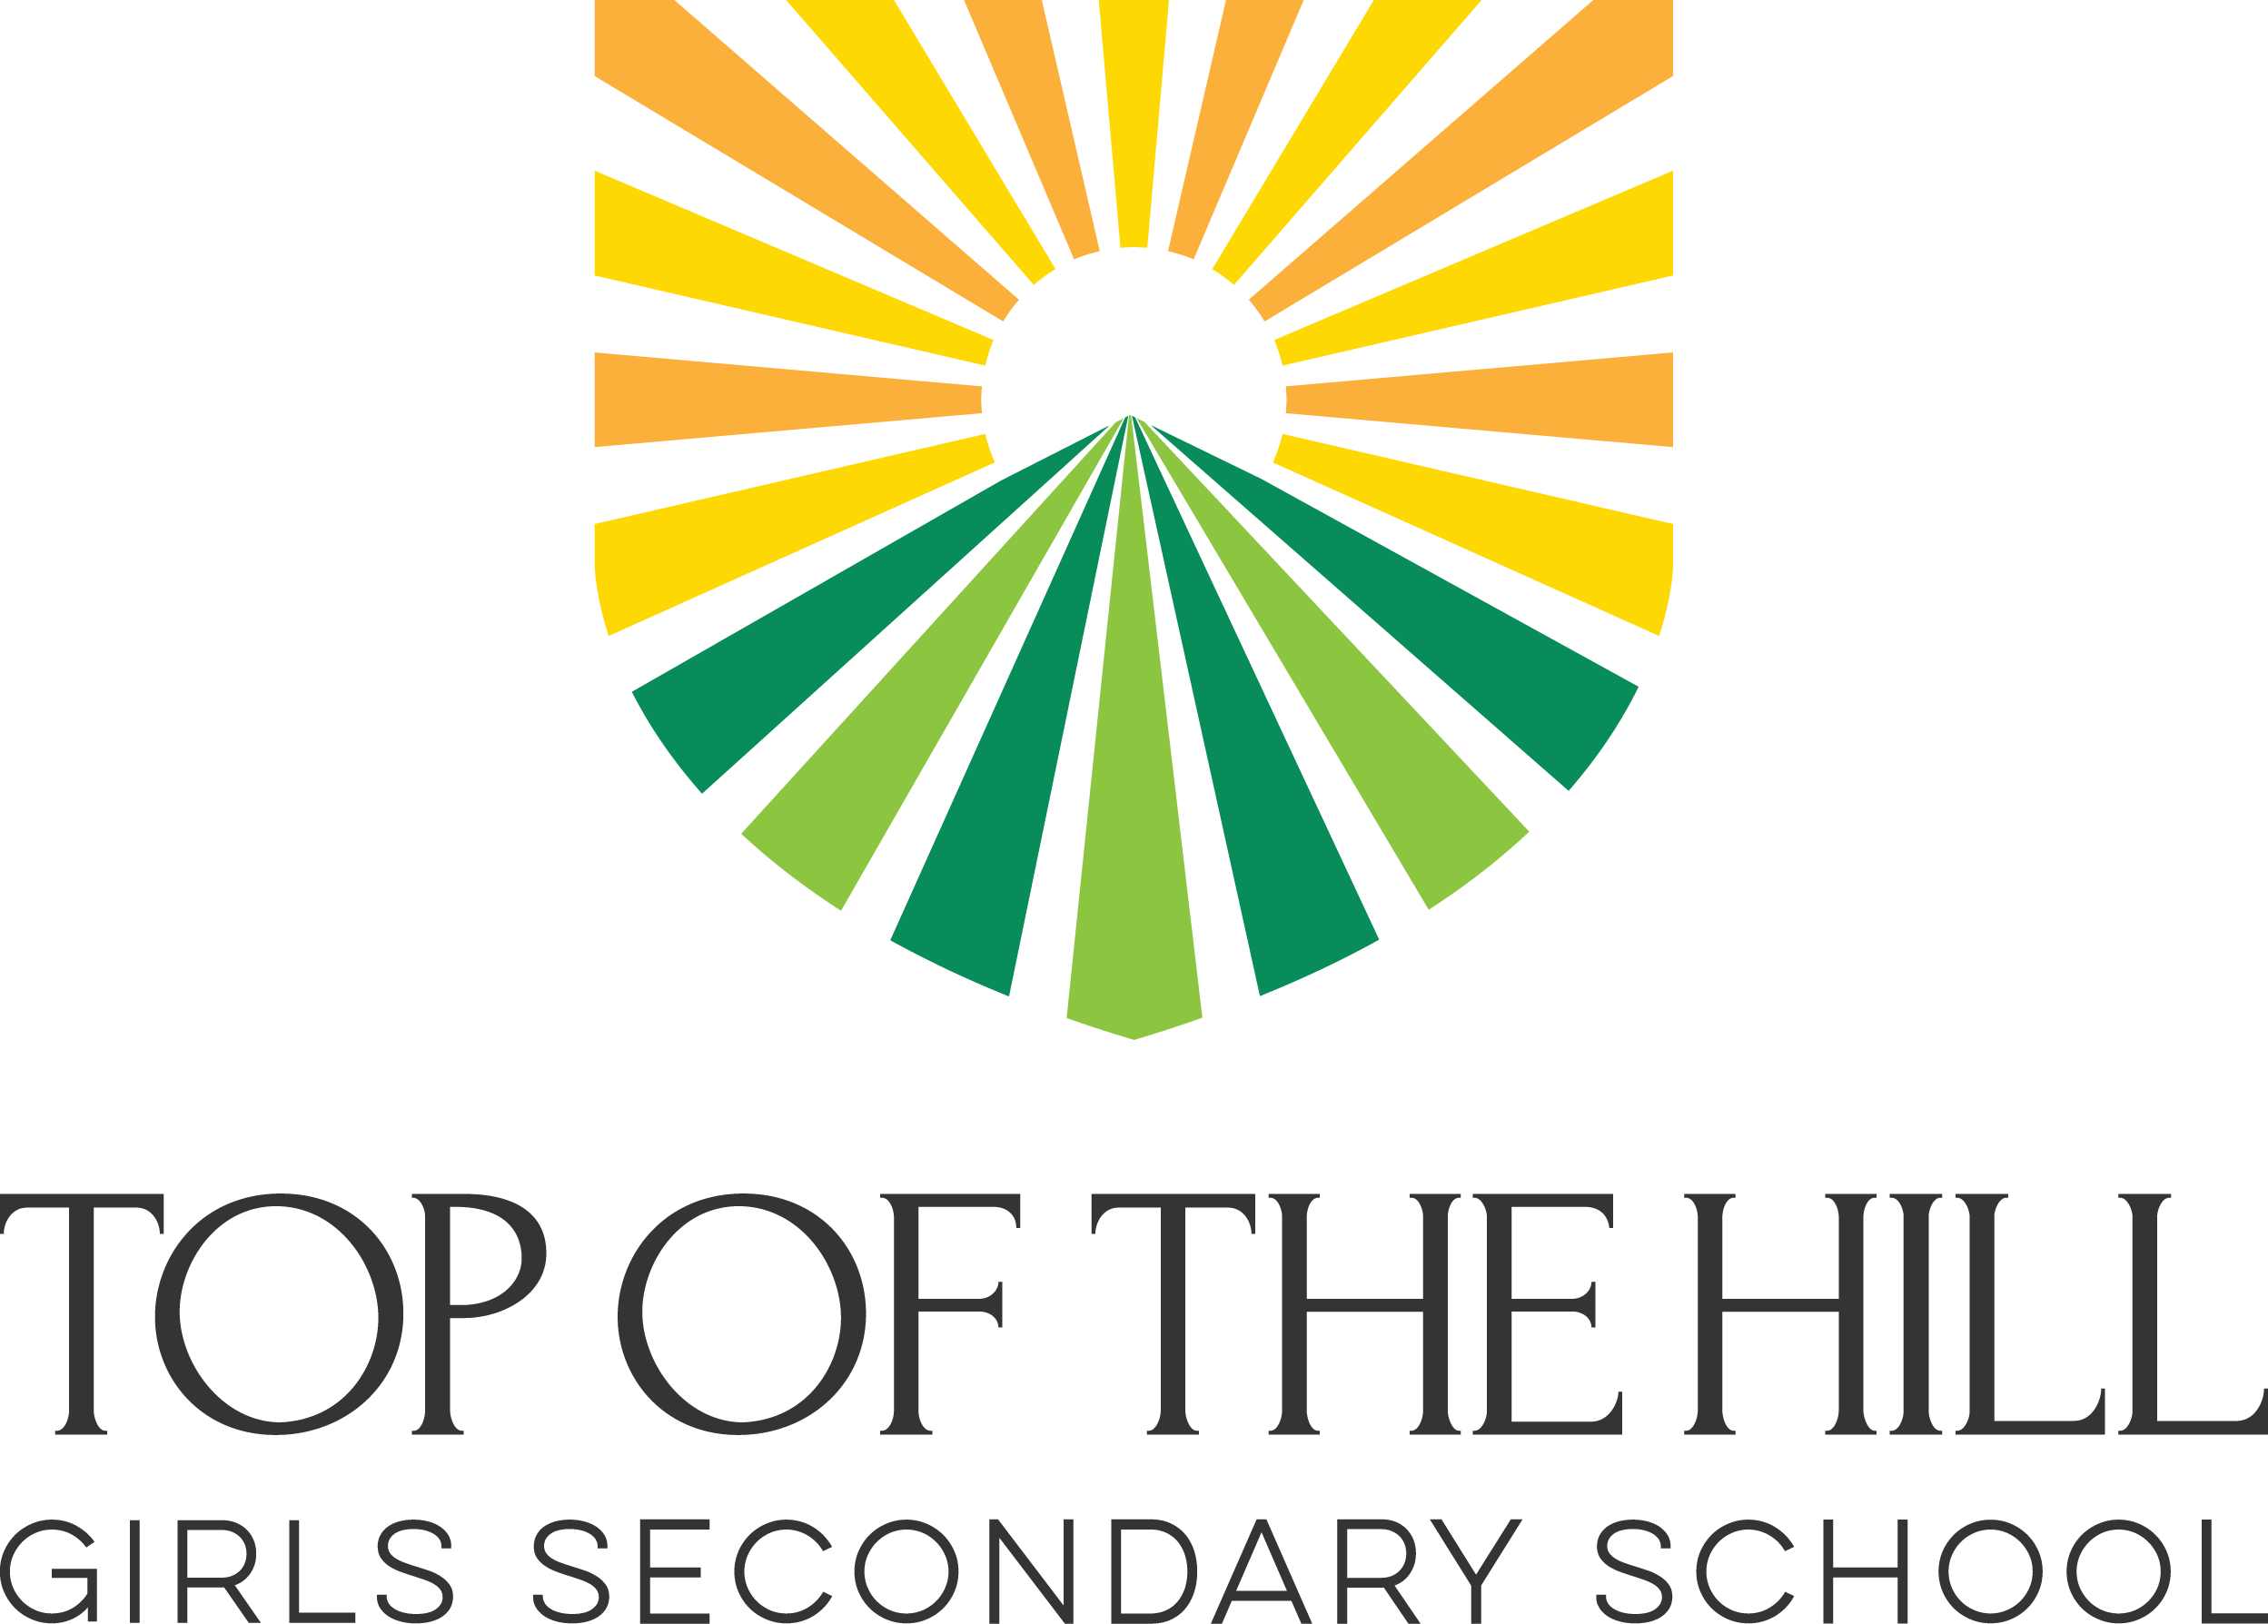 Top of the Hill School